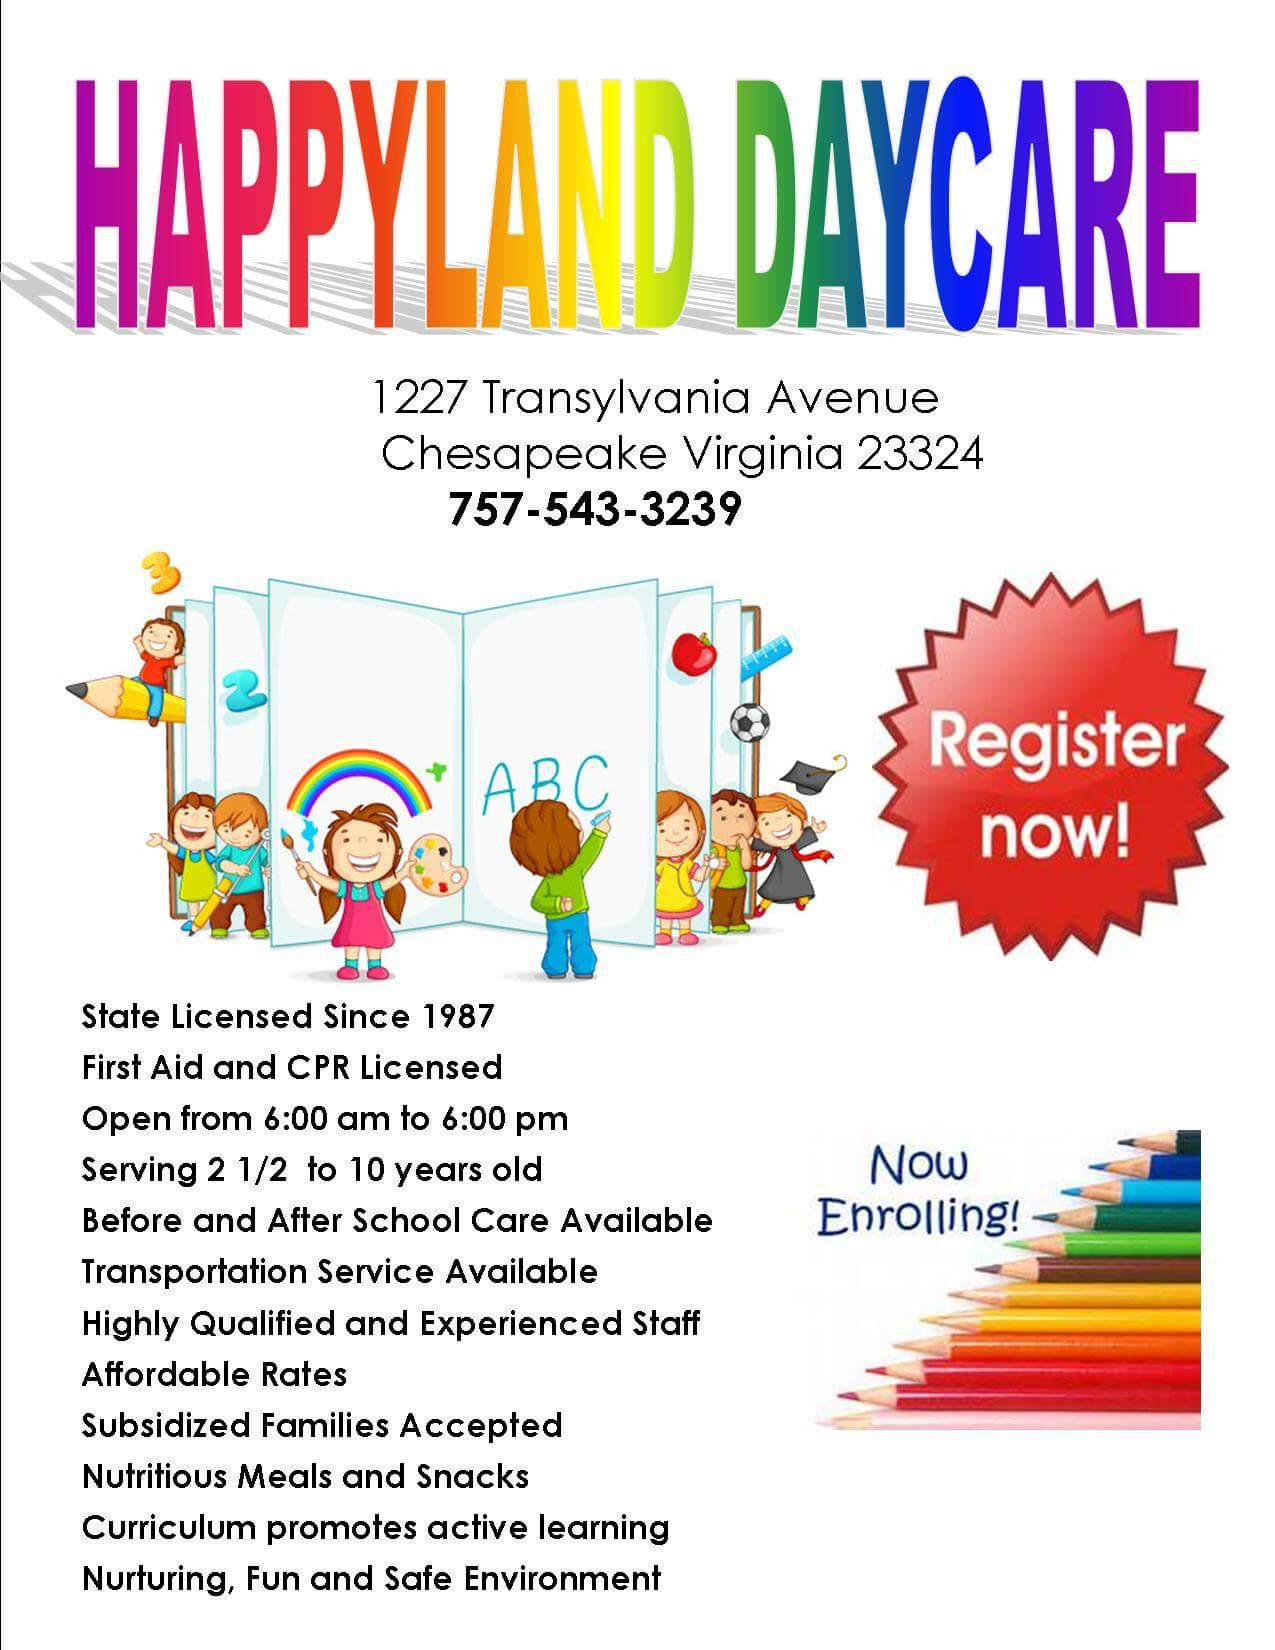 Happyland Day Care